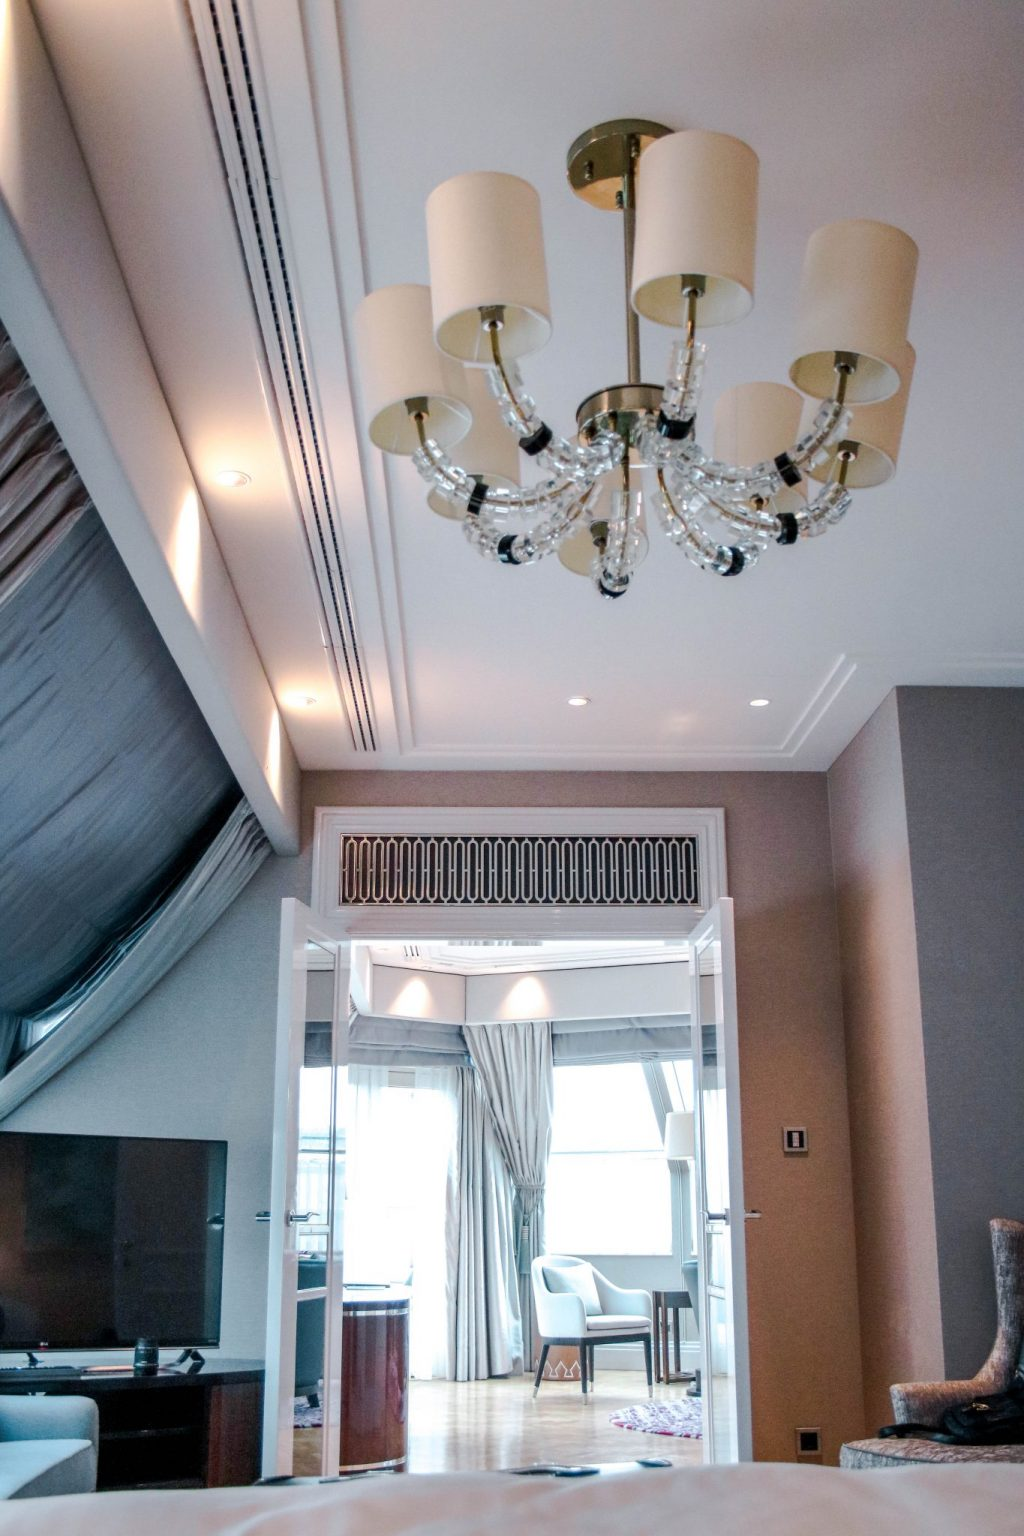 Where To Stay In Budapest: A Luxury Getaway at The Ritz Carlton Chairman Suite